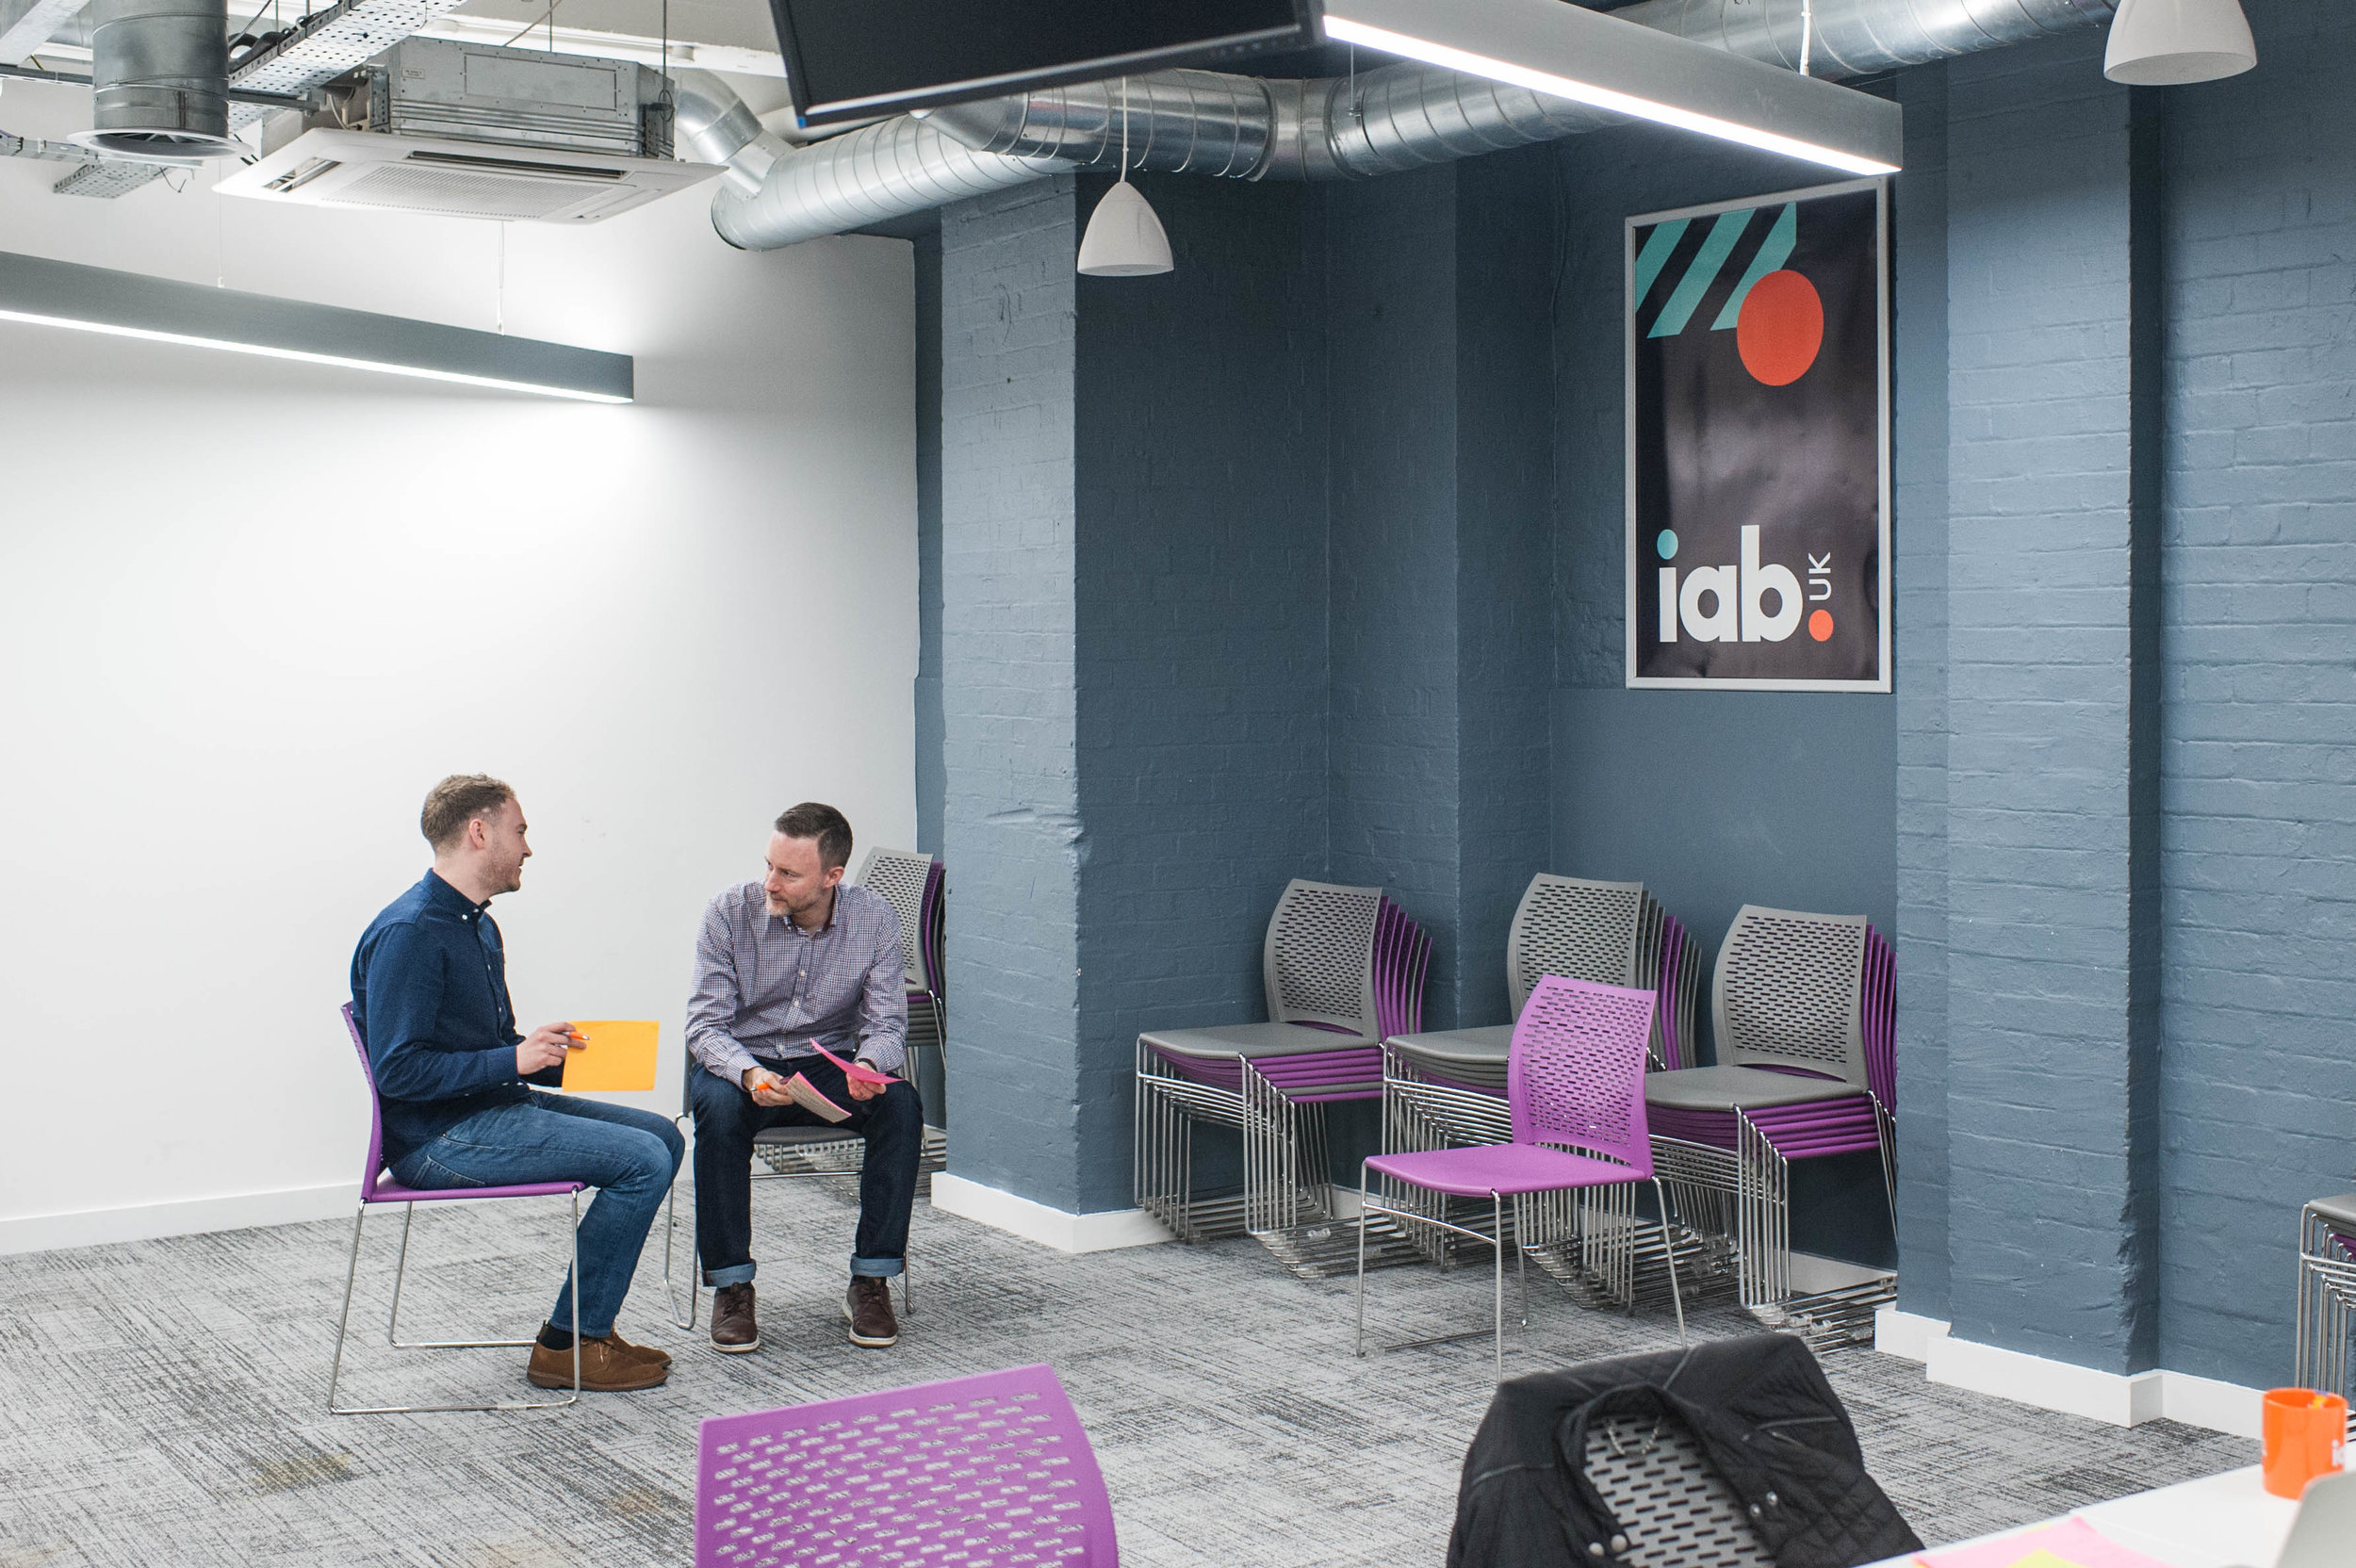 IAB Uk_Incidental Shots_SM (295 of 312).jpg